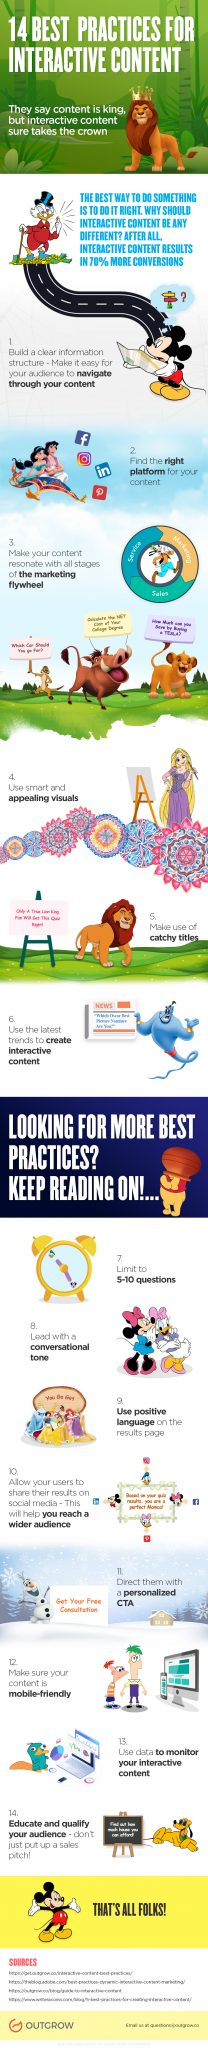 14 Best Practices For Interactive Content [Infographic]